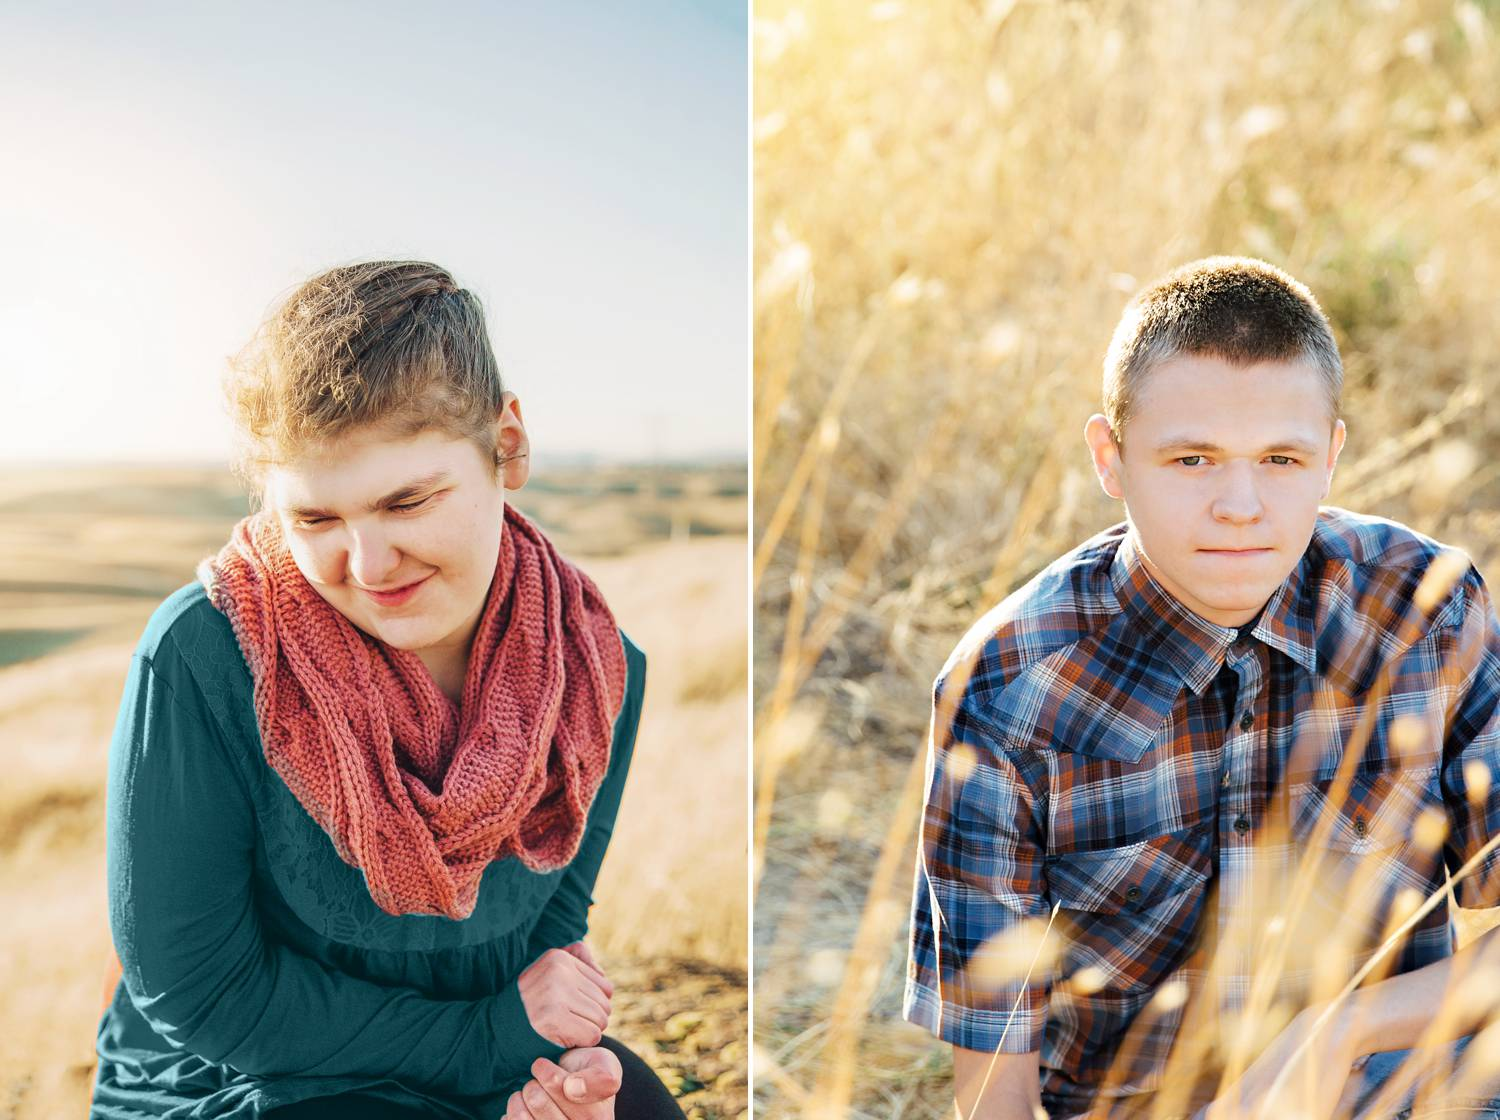 This diptych shows portraits of two high schoolers with special needs. In one, a girl looks down and to the side, her creamy skin highlighted by a setting sun in a beautiful wide field. In the other, a handsome young man makes eye contact with the camera while sitting comfortably on the ground in a wheat field.